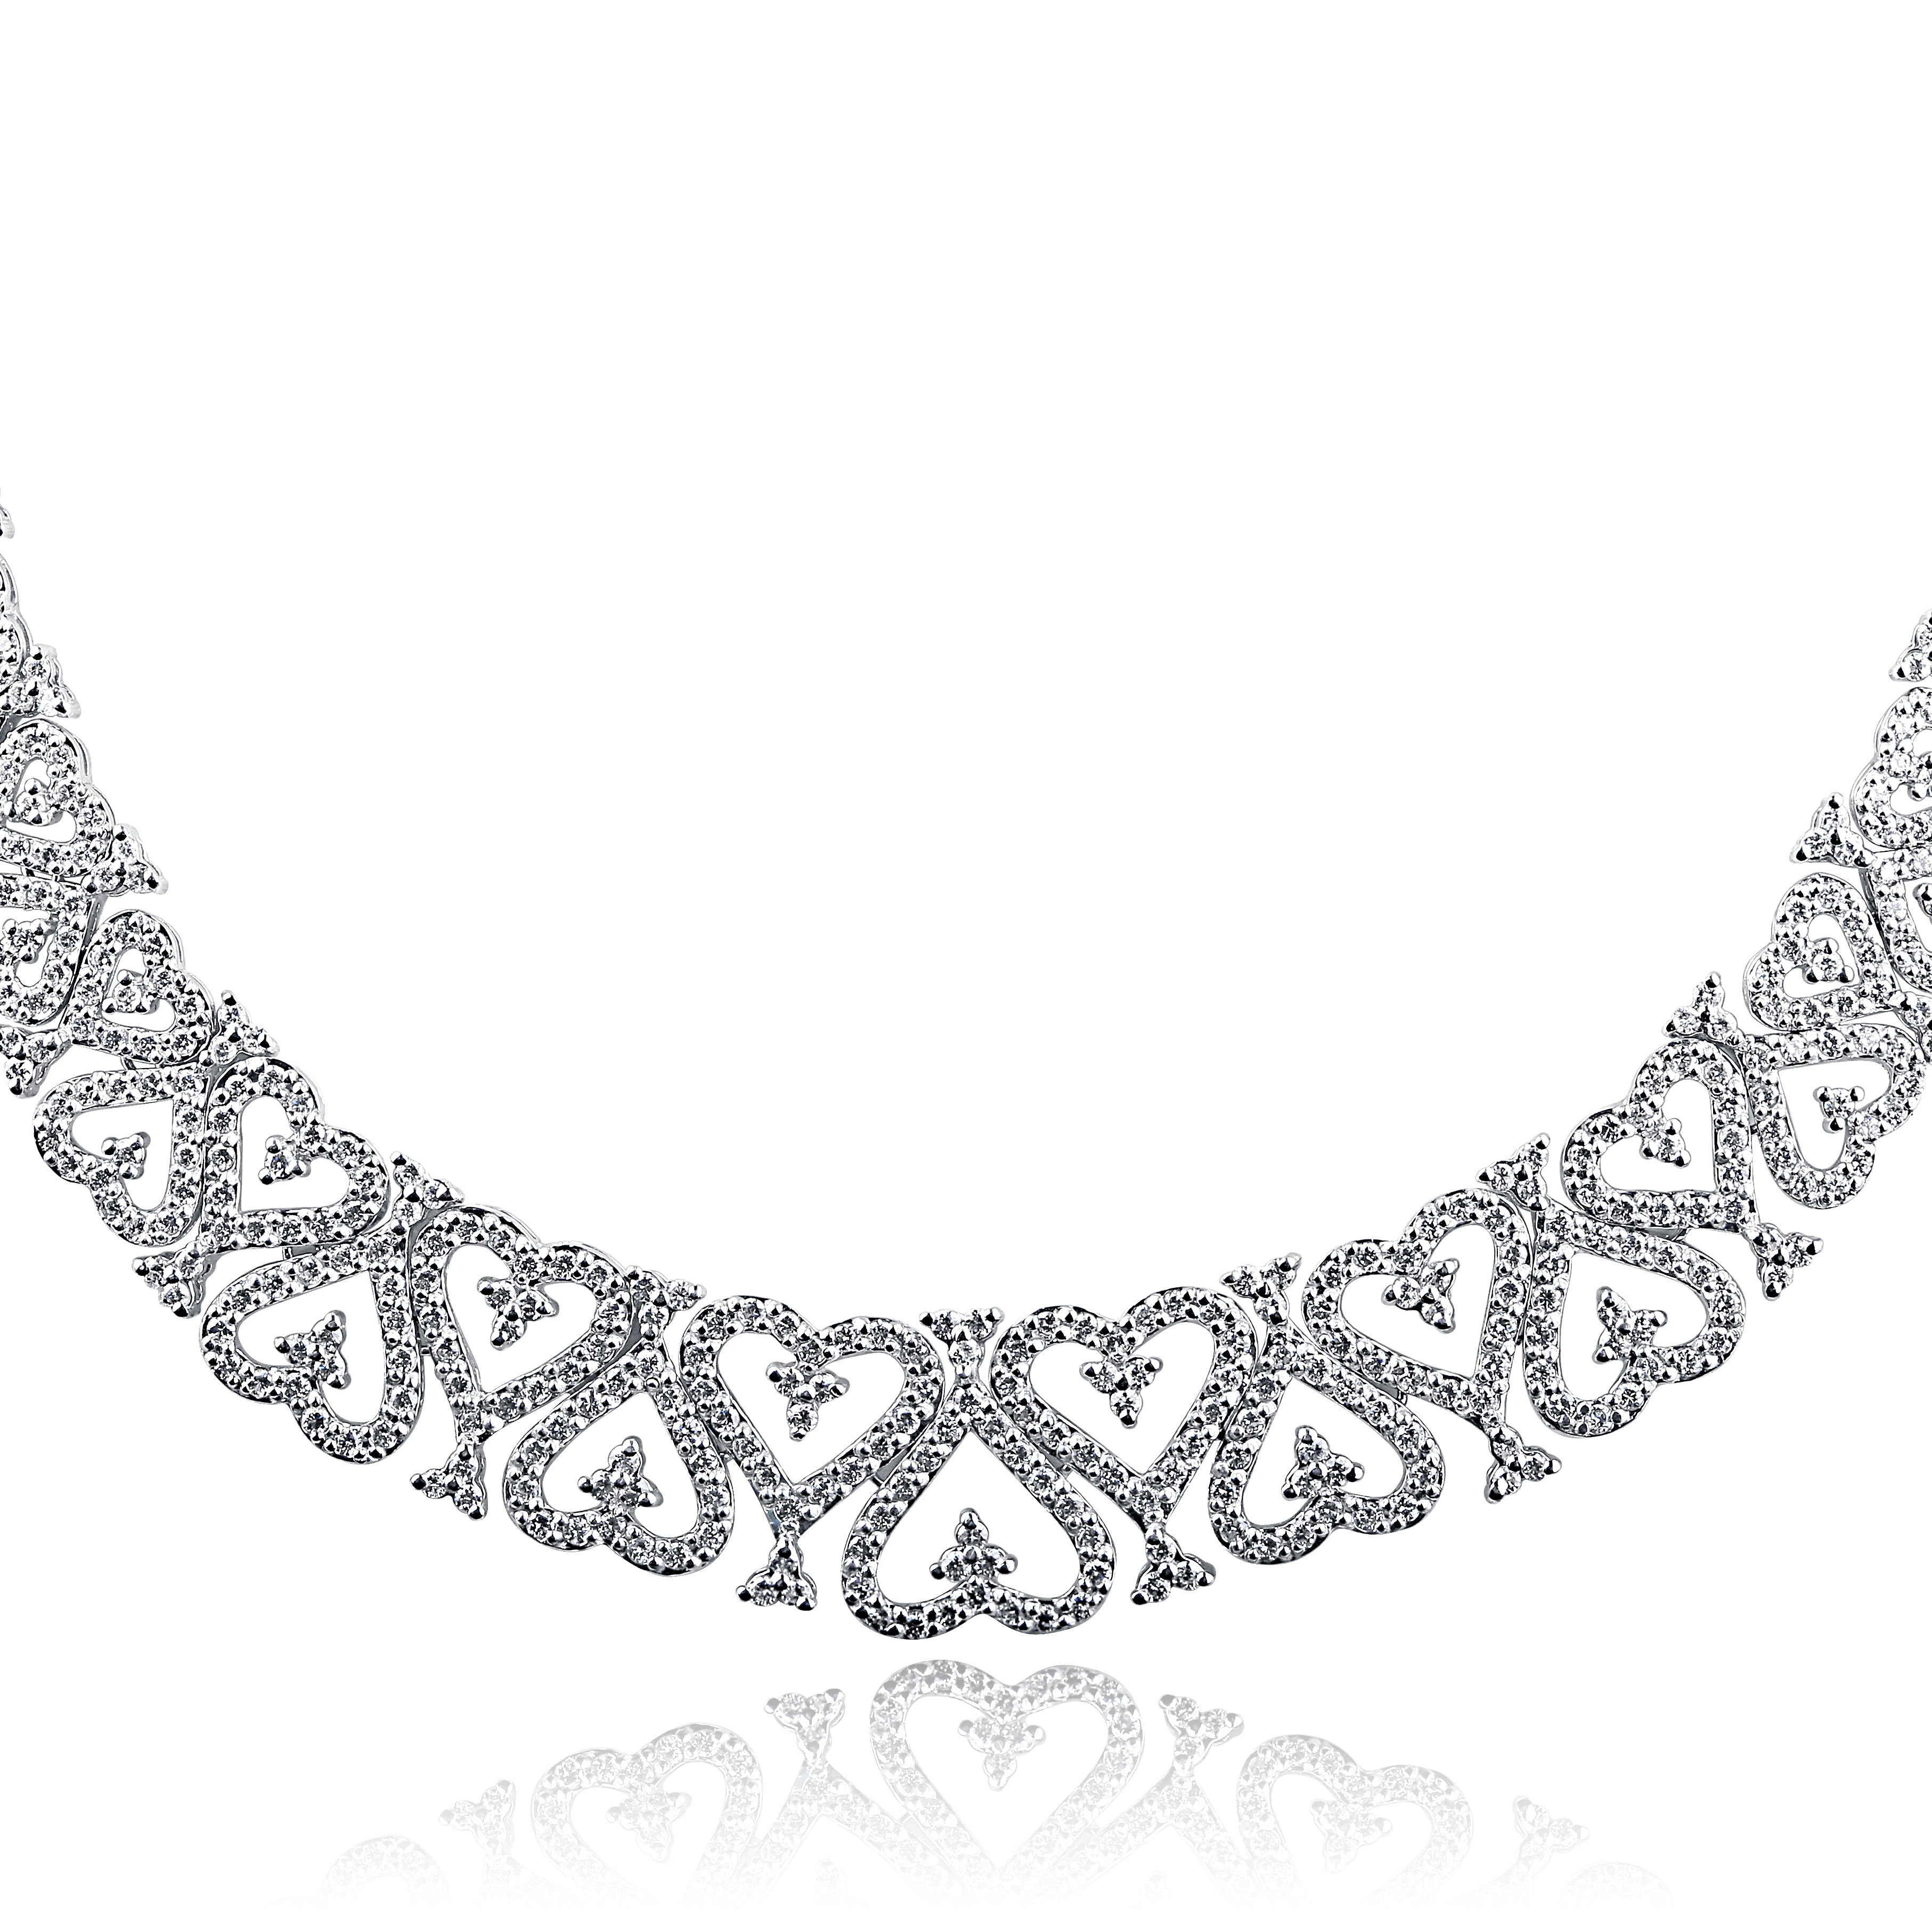 f7b988d27be31 Details about 4 Carat Genuine Diamond Necklace Graduated Heart Link 14k  White Gold Women's 17